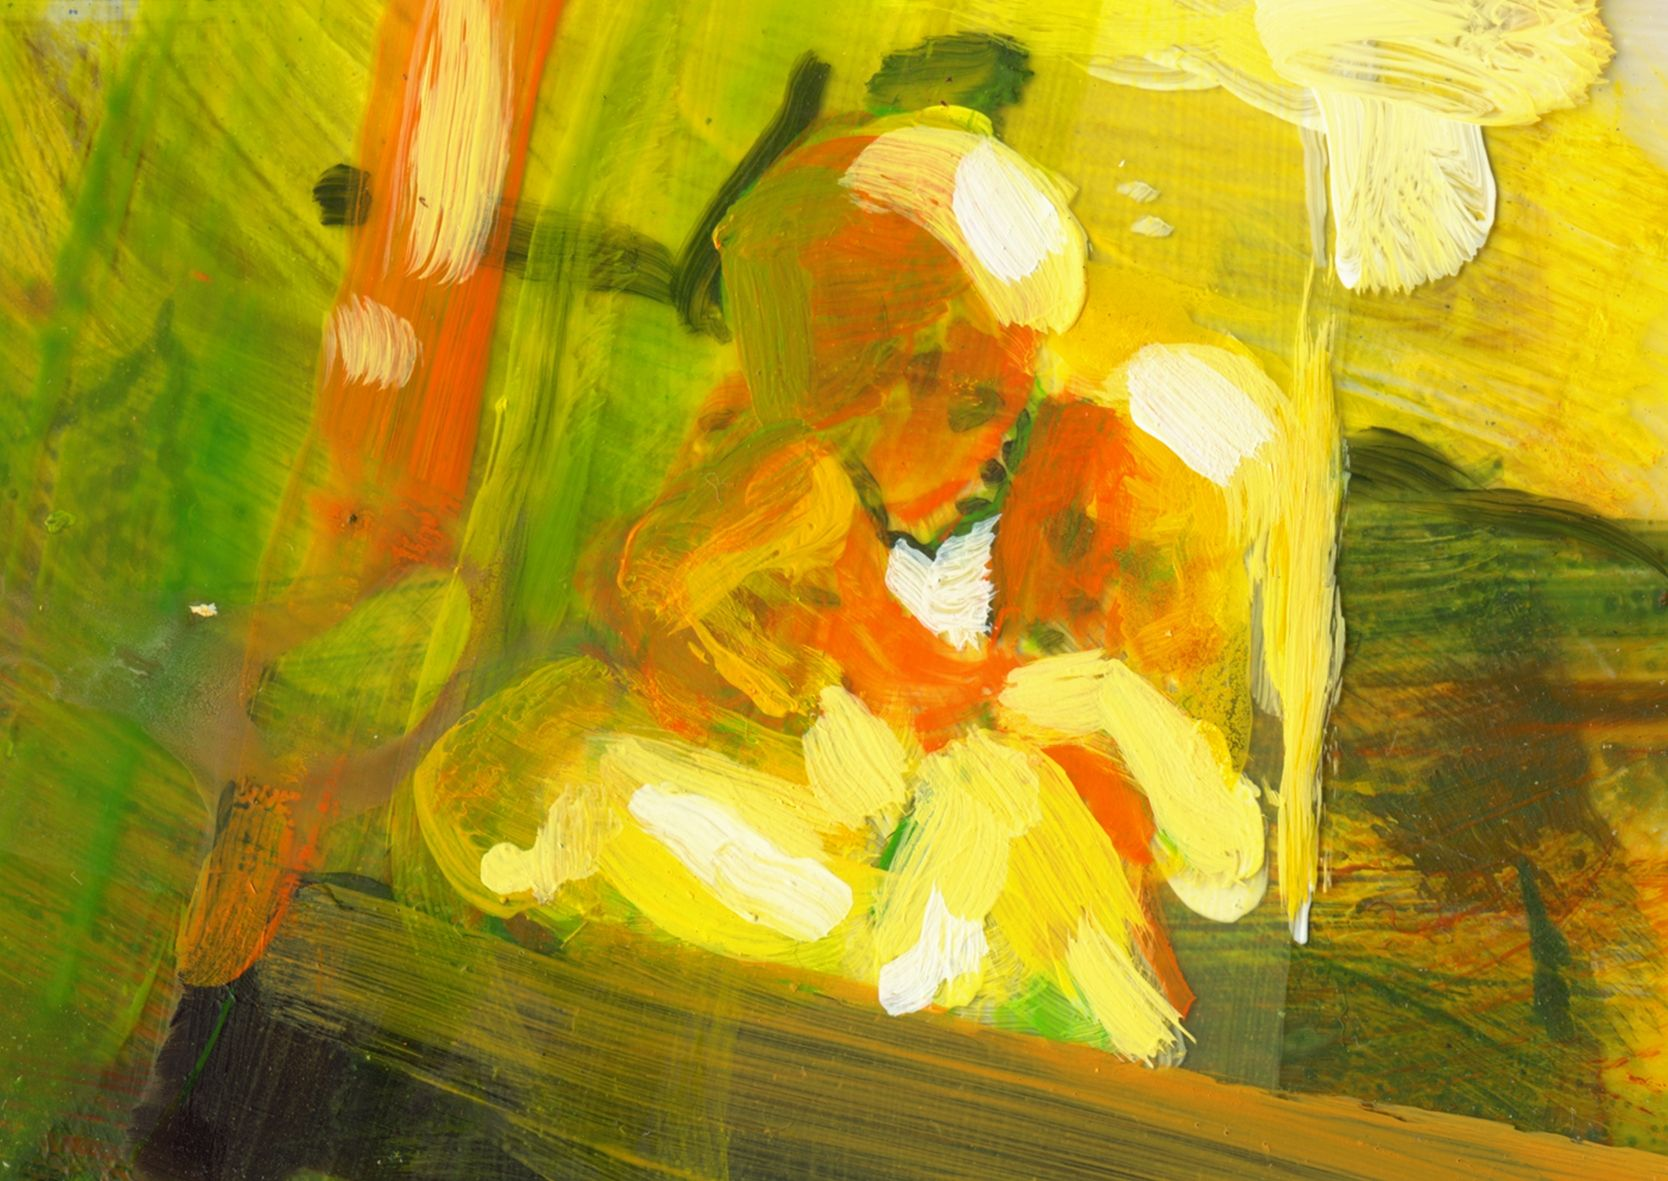 Still from Reflect, 2005, Animation on DVD